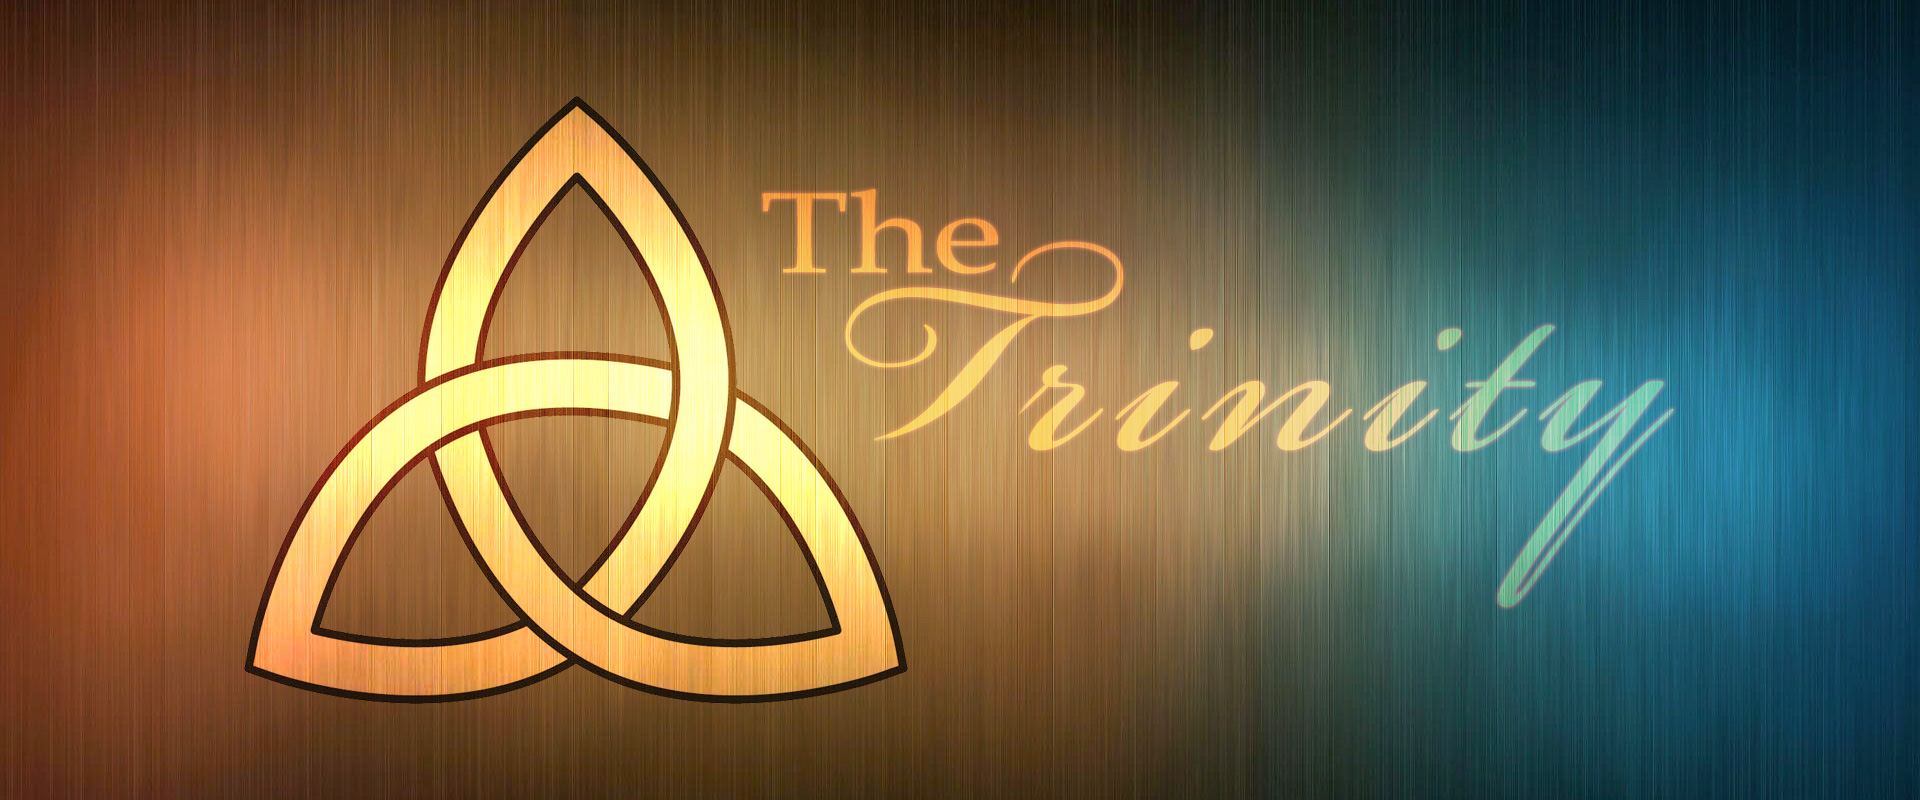 the christians doctrine of trinity By peter ditzel so that we know what we are talking about, let's begin with a definition a basic formulation of the trinity doctrine is, god is a trinity of three persons—the father, the son, and the holy spirit, and these three are one god, the same in substance, equal in power and glory.